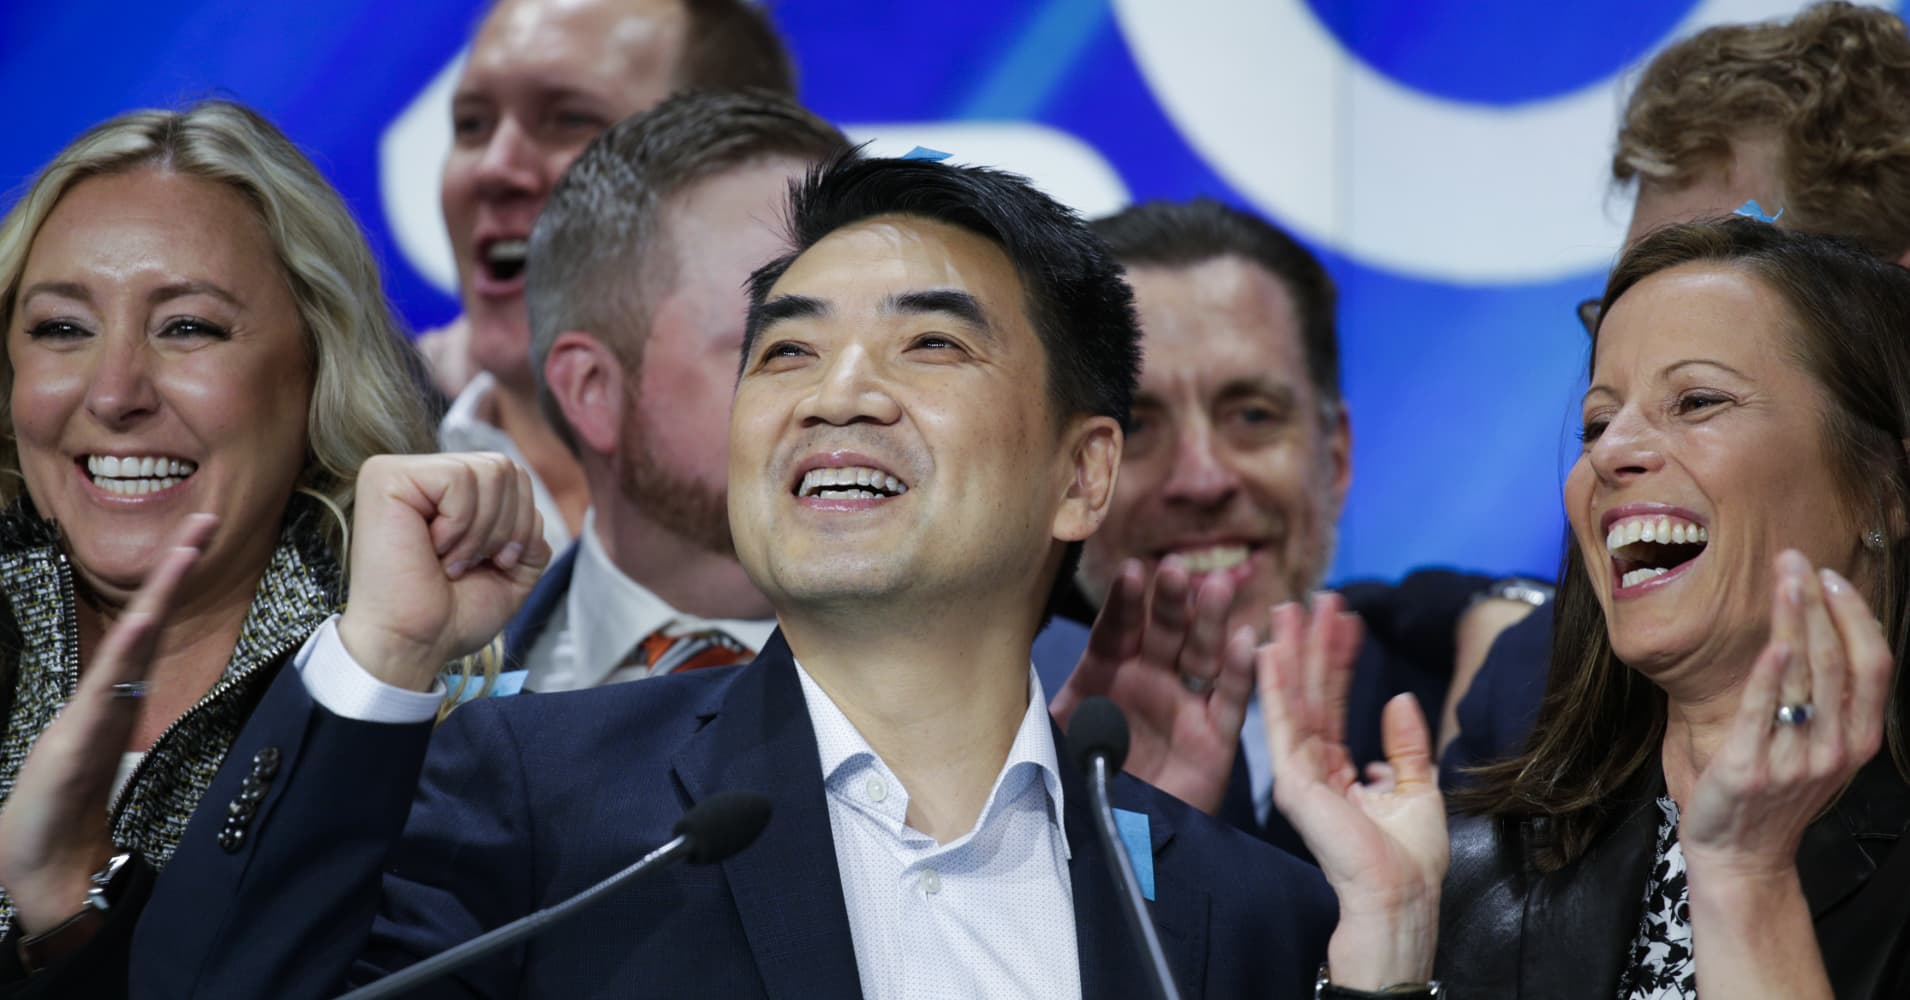 Zoom CEO Eric Yuan worth $3 billion after IPO